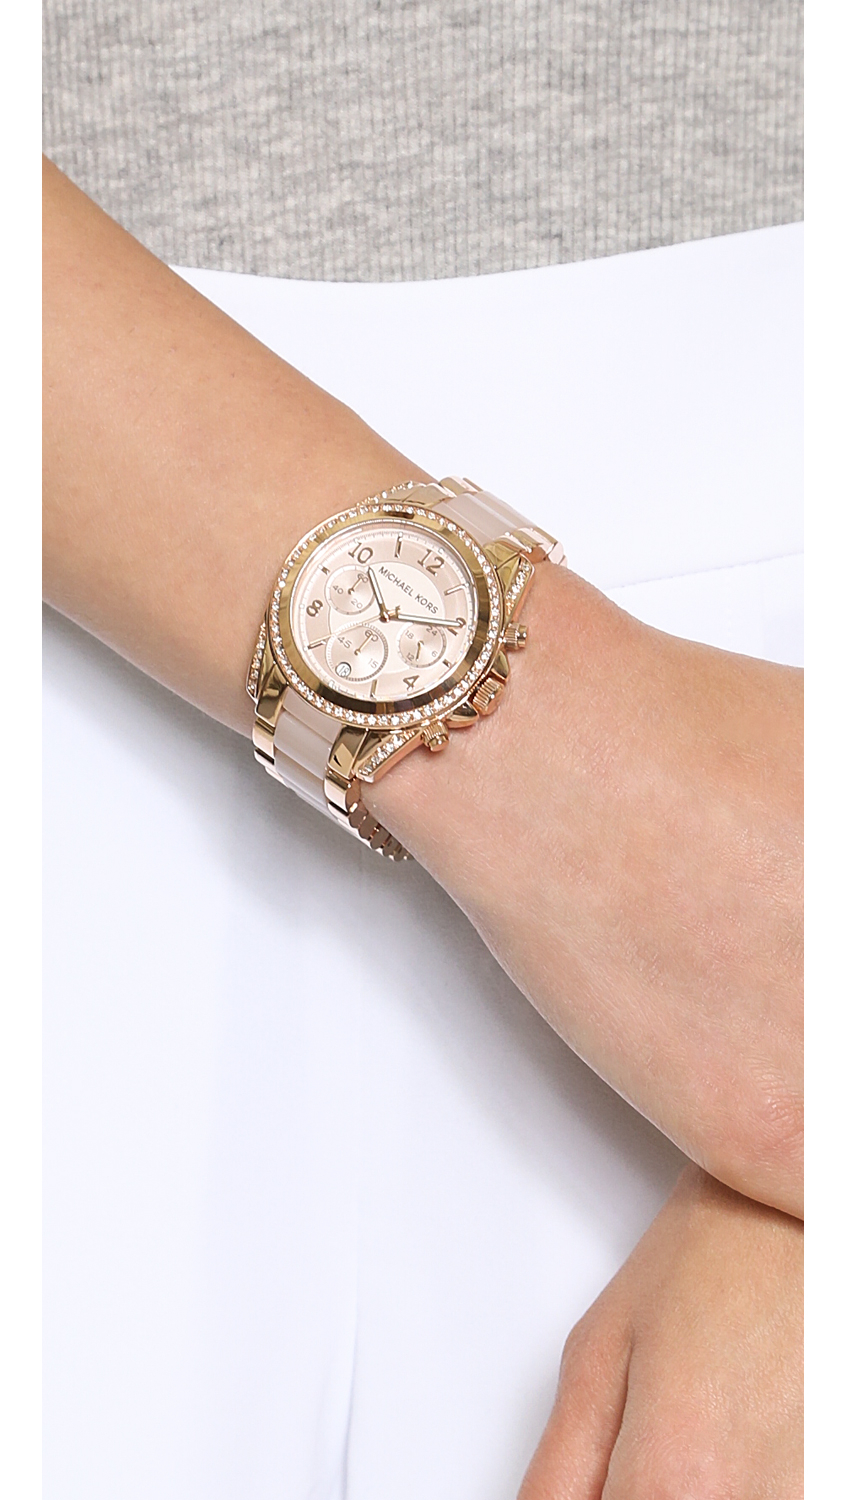 fd10e7d18 Gallery. Previously sold at: Shopbop · Women's Gold Watches